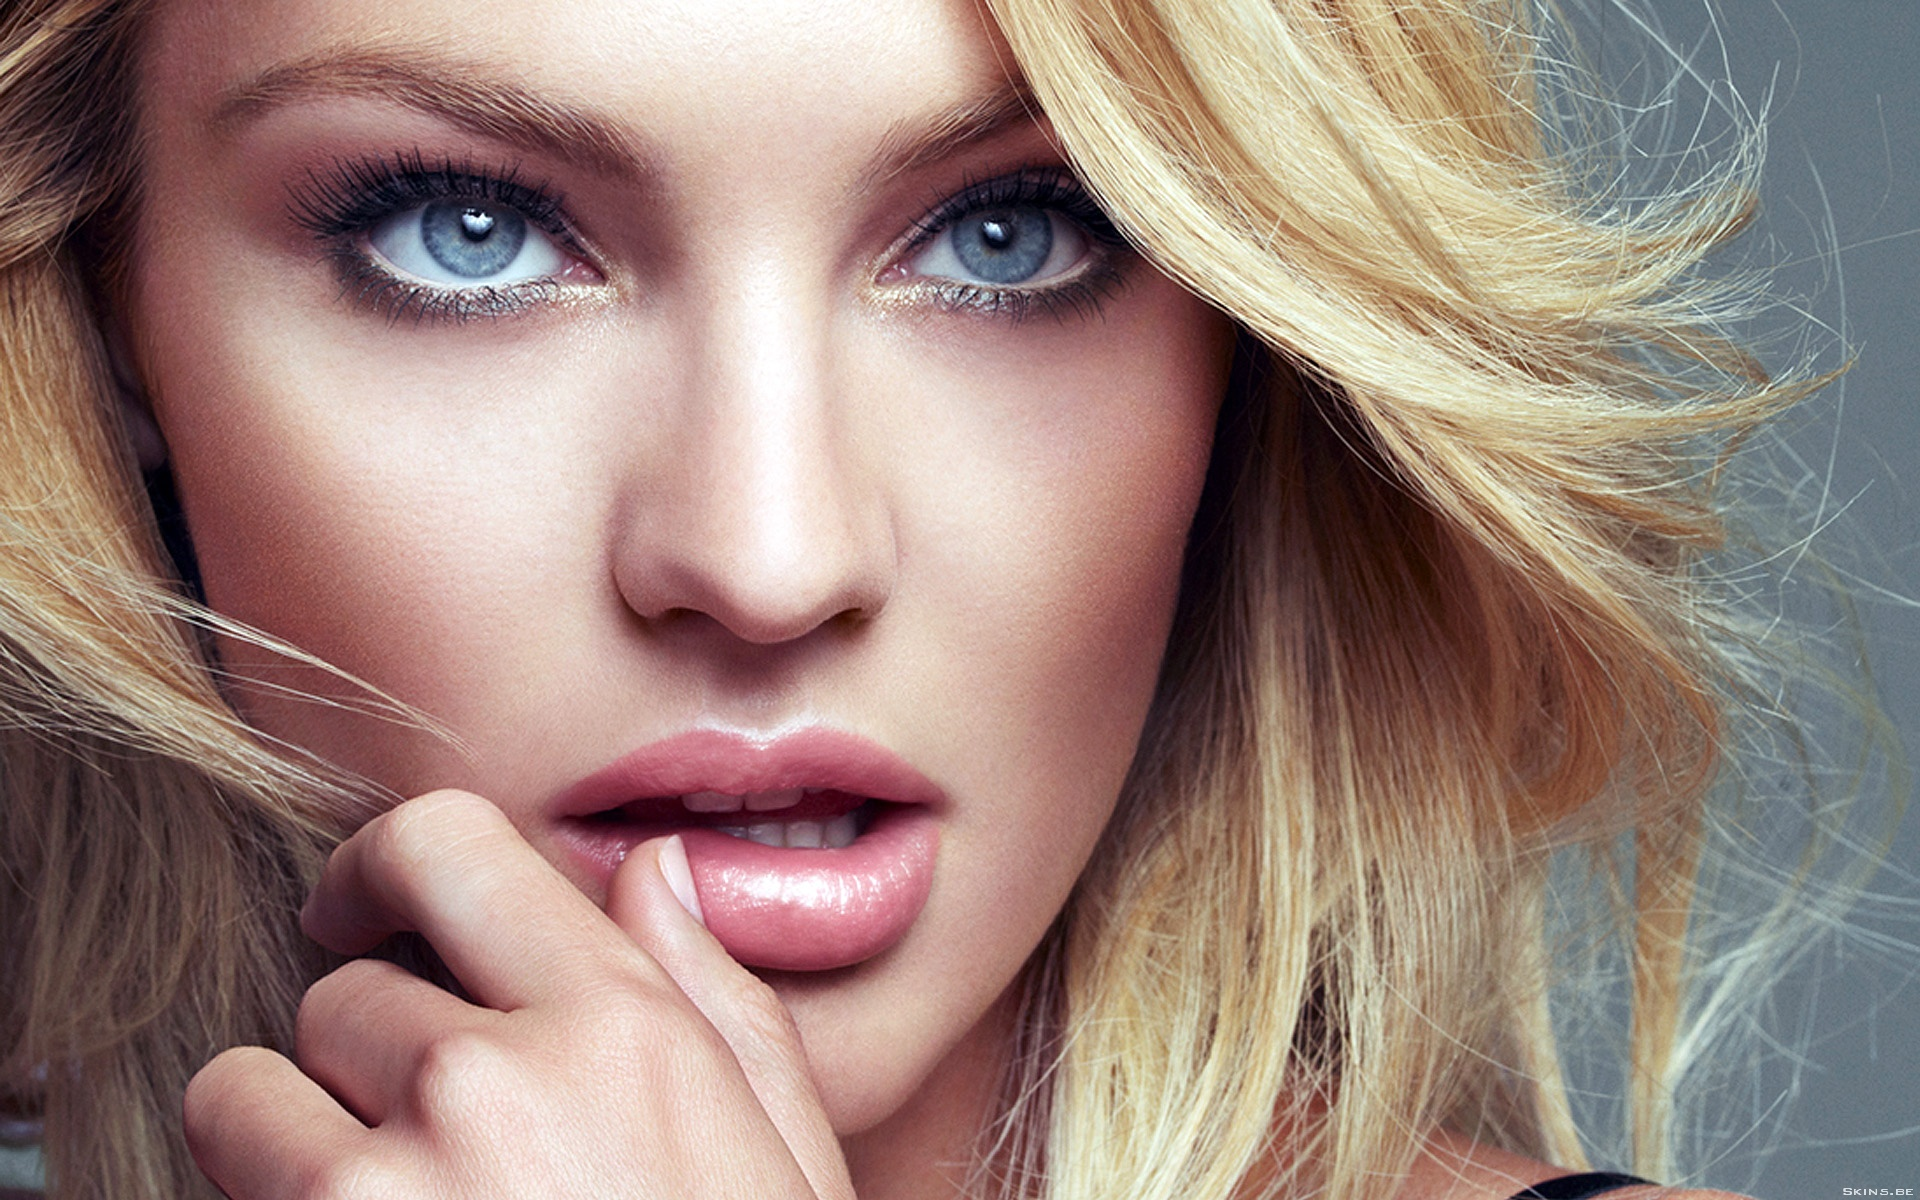 2a5350fdd4 Candice Swanepoel Close Up. Candice Swanepoel Hot · Candice Swanepoel  Breast Size